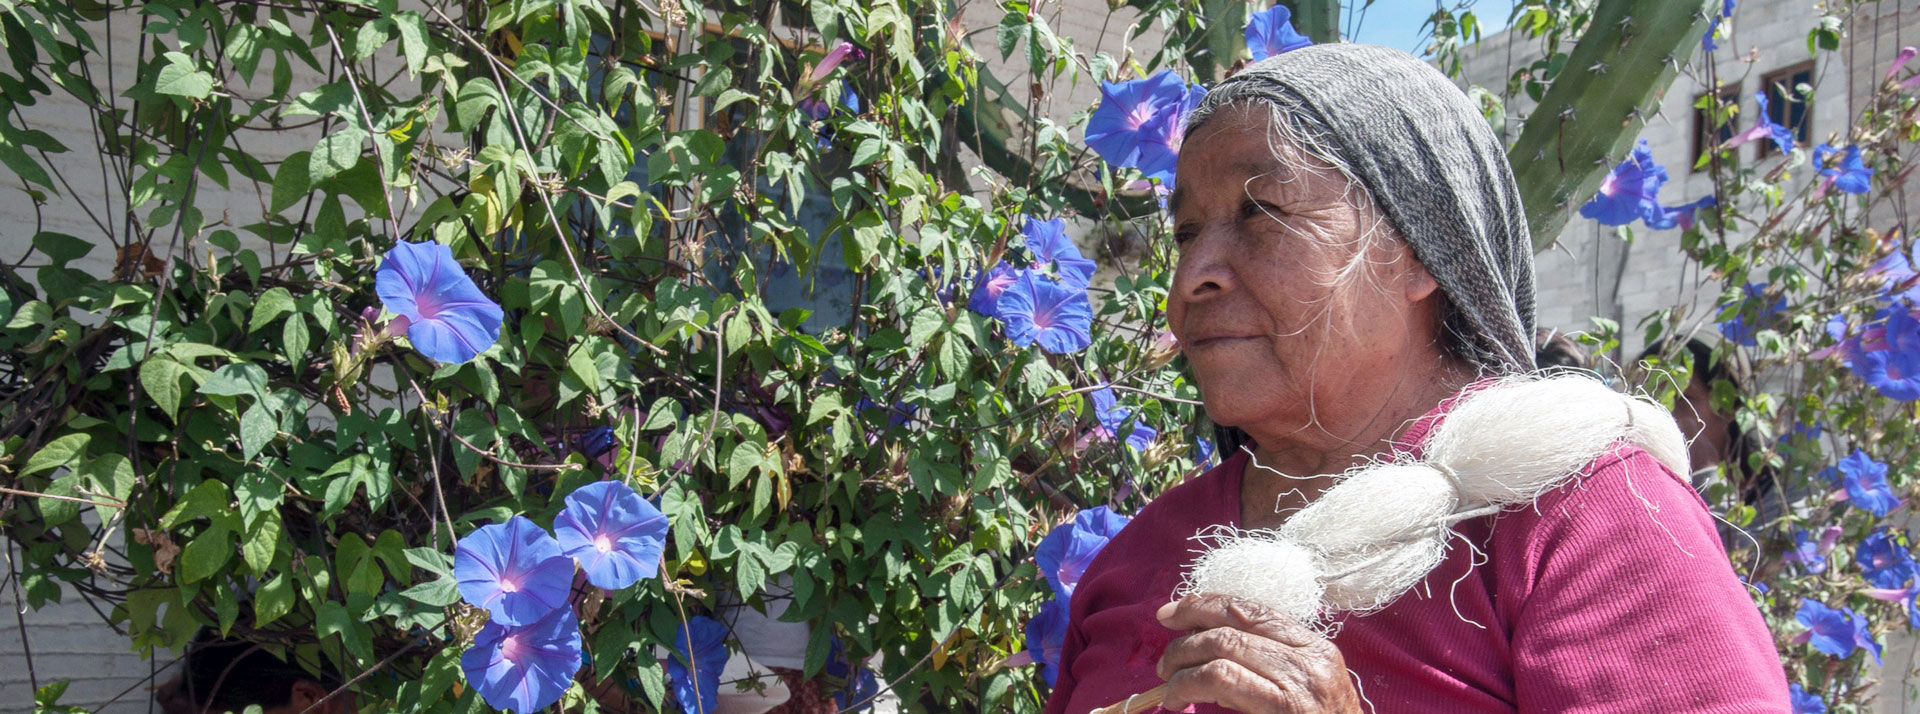 Woman stands next to tree with purple flowers holding woven fibers over her shoulder